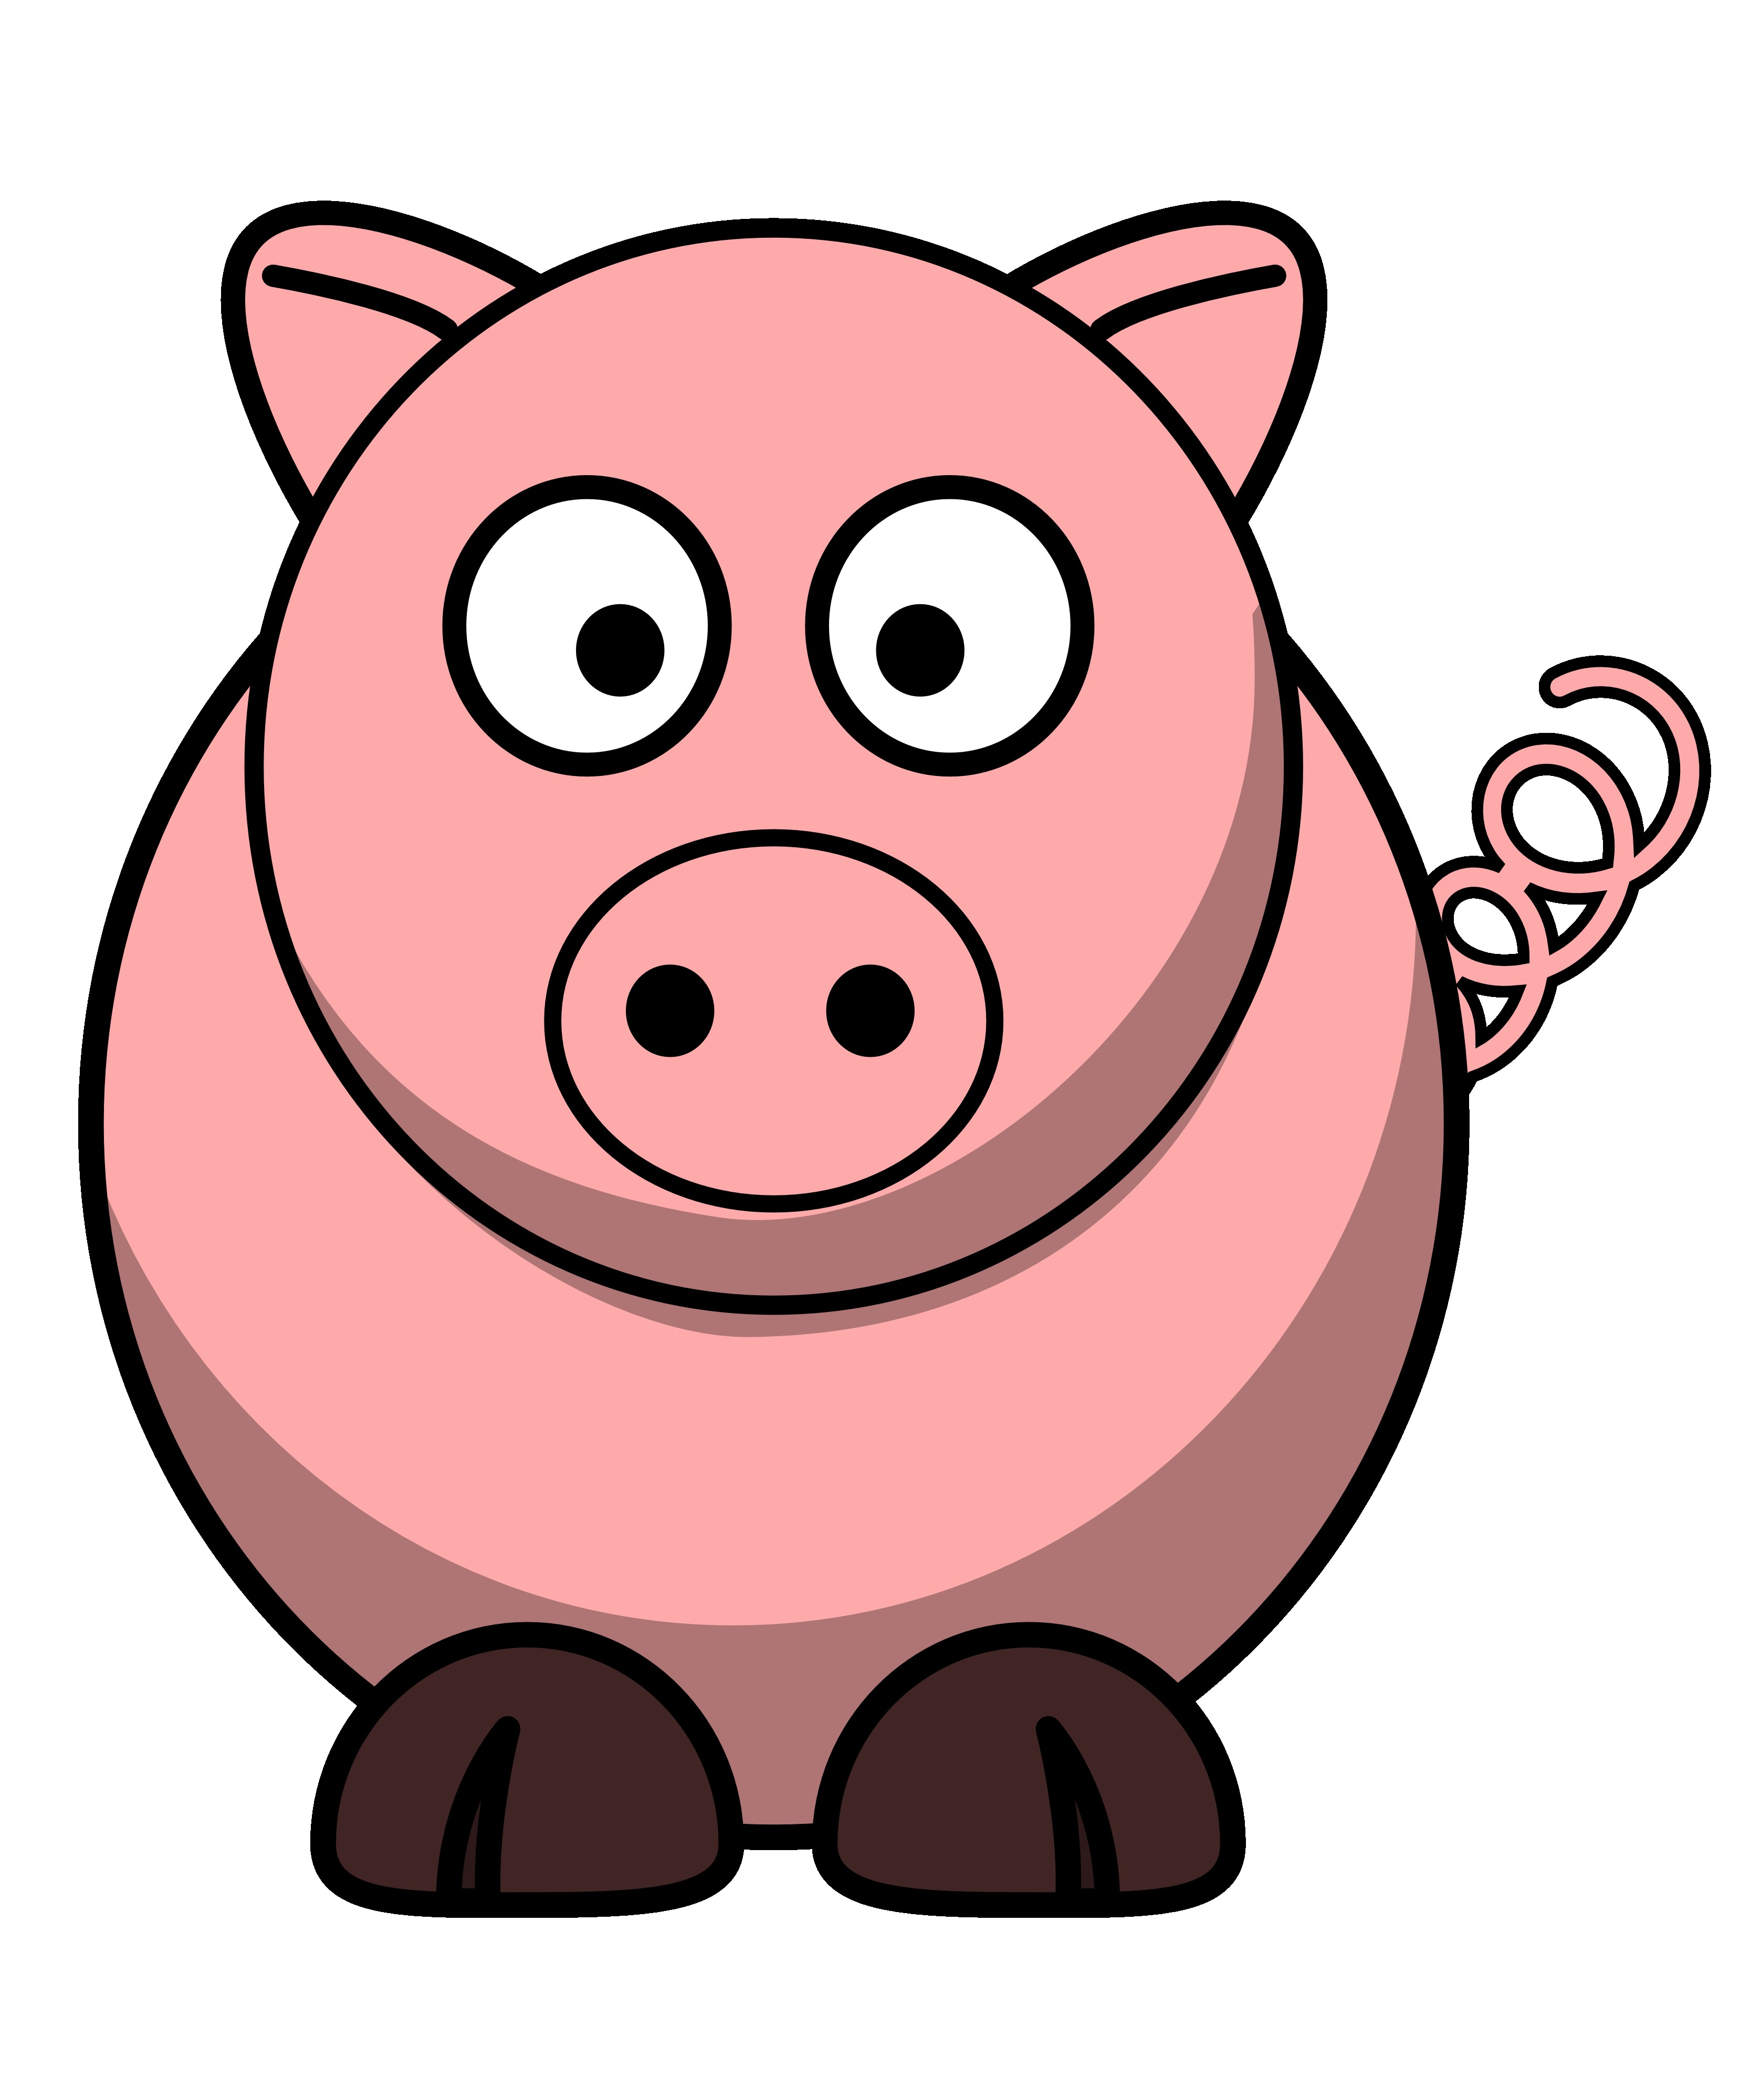 Free Free Pig Clipart, Download Free Clip Art, Free Clip Art.